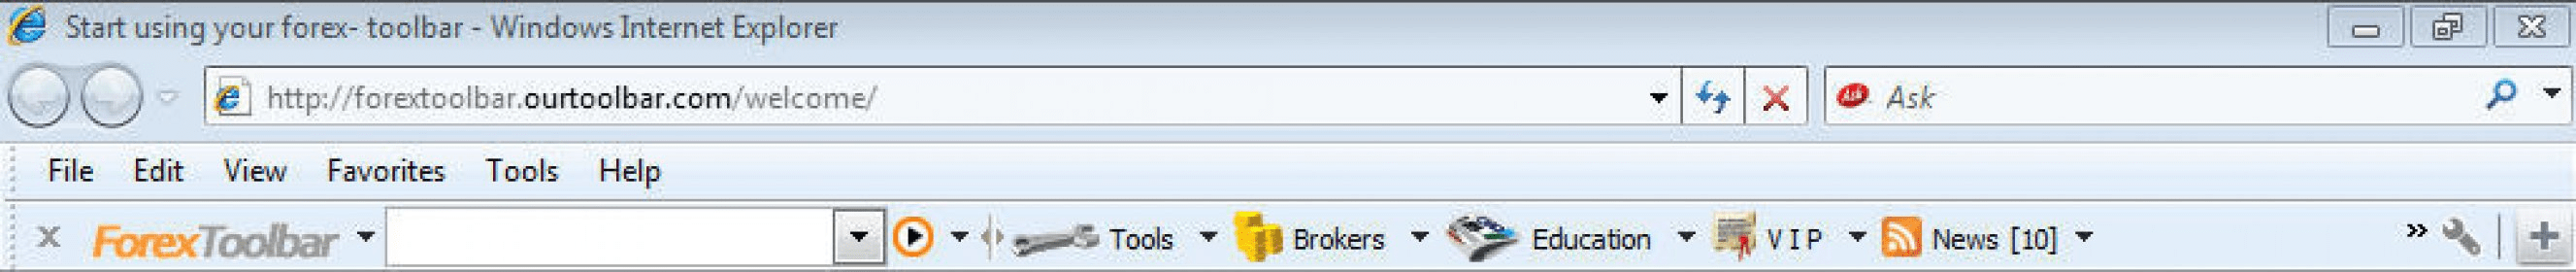 Forex news toolbar ethical investment trusts uk wiki